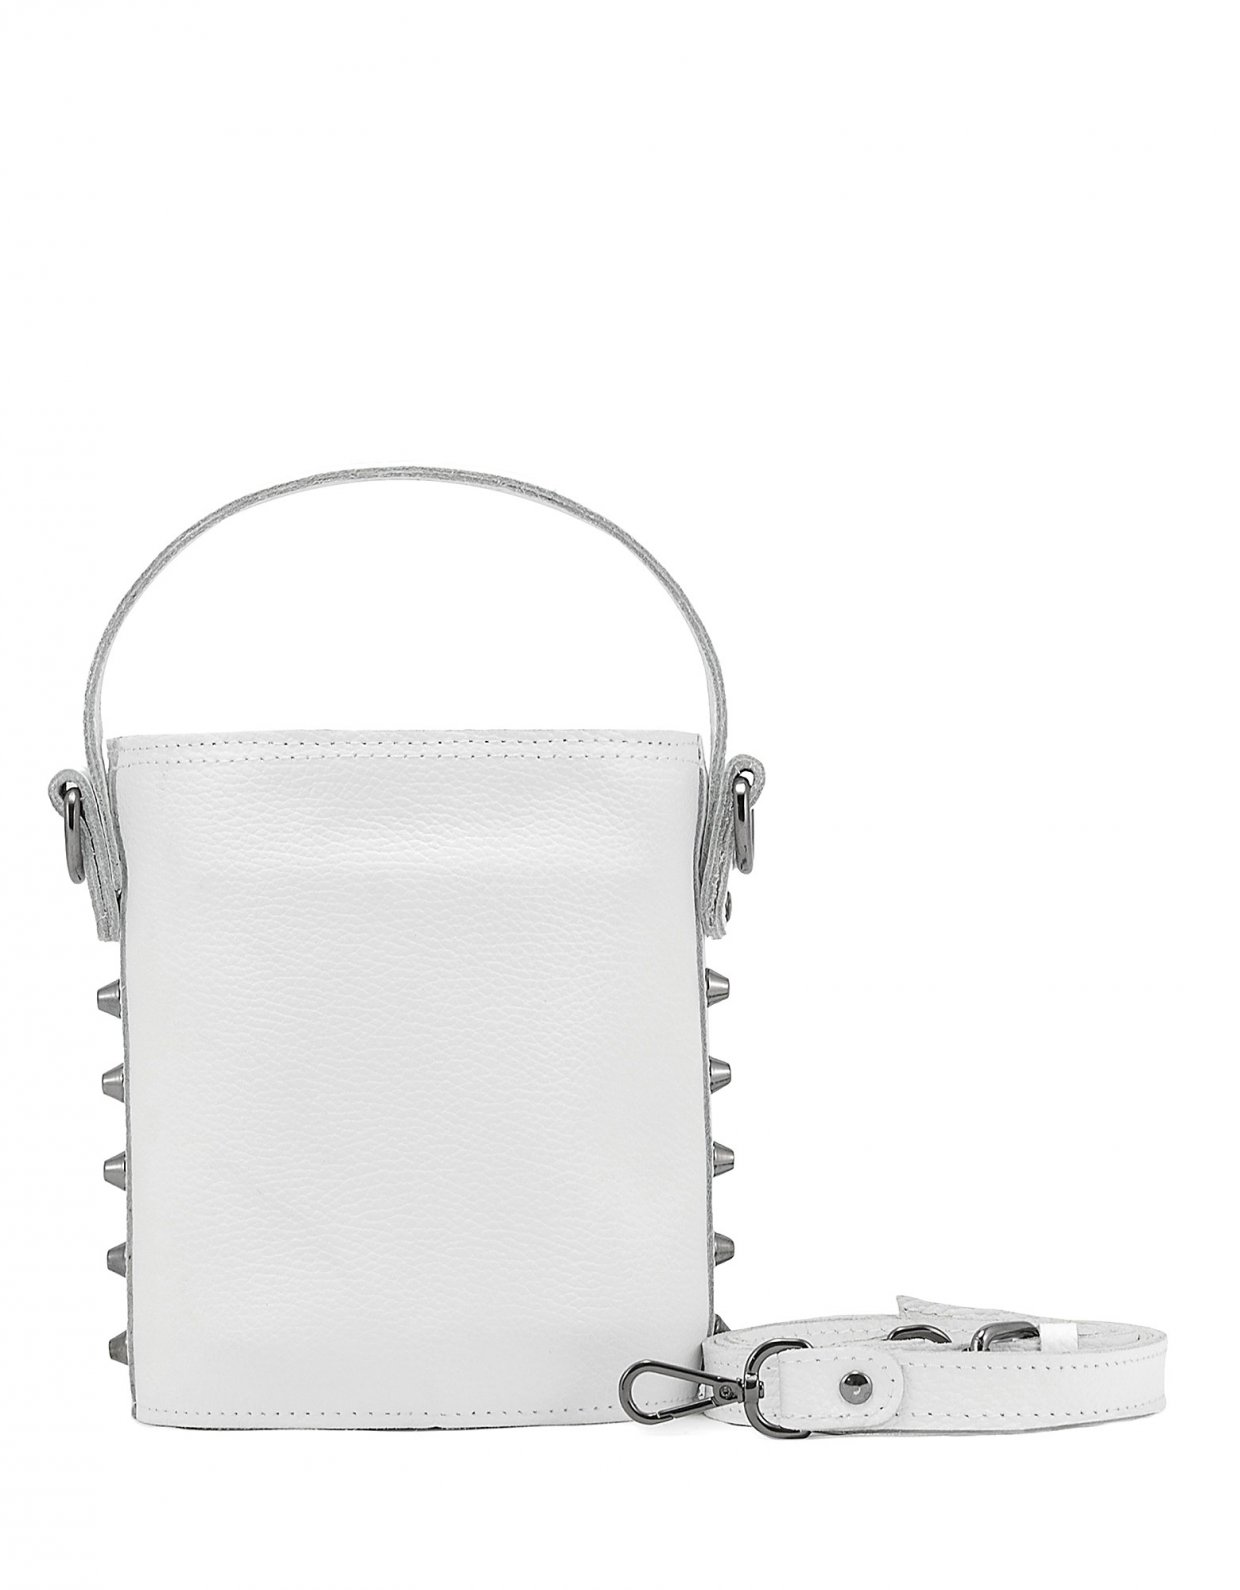 Elena Athanasiou Basket bag small white